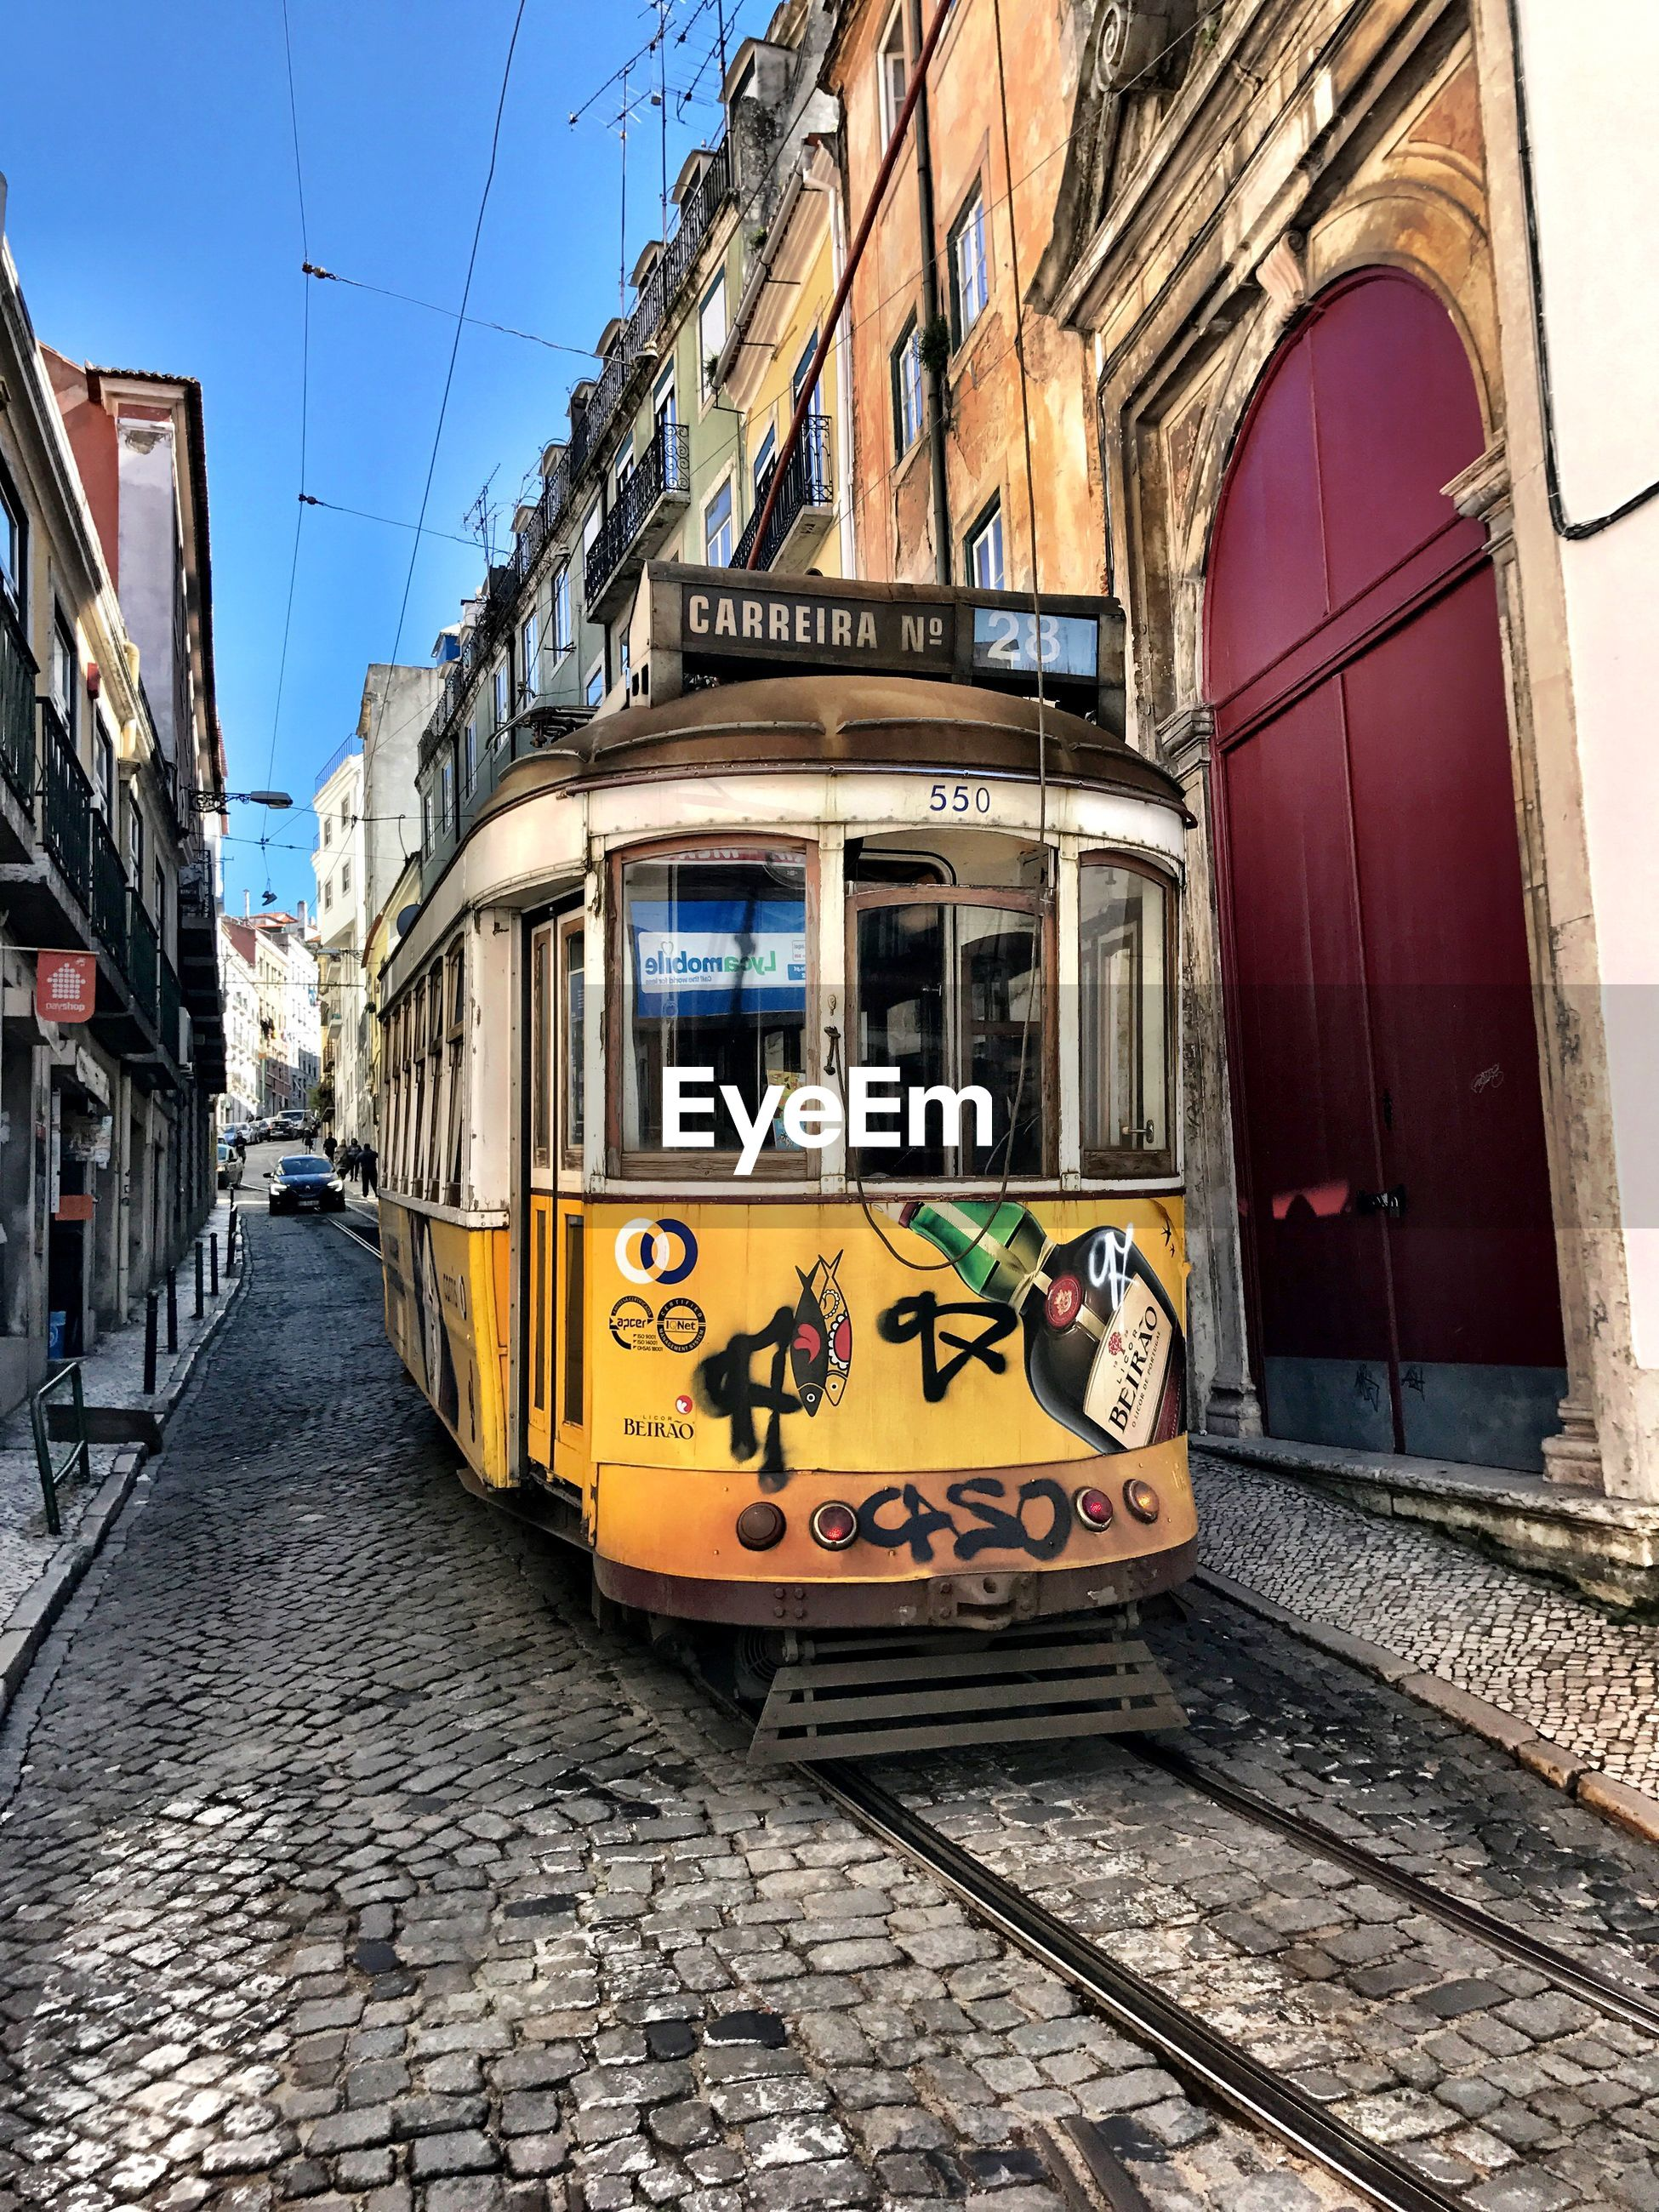 Cable car on street in city